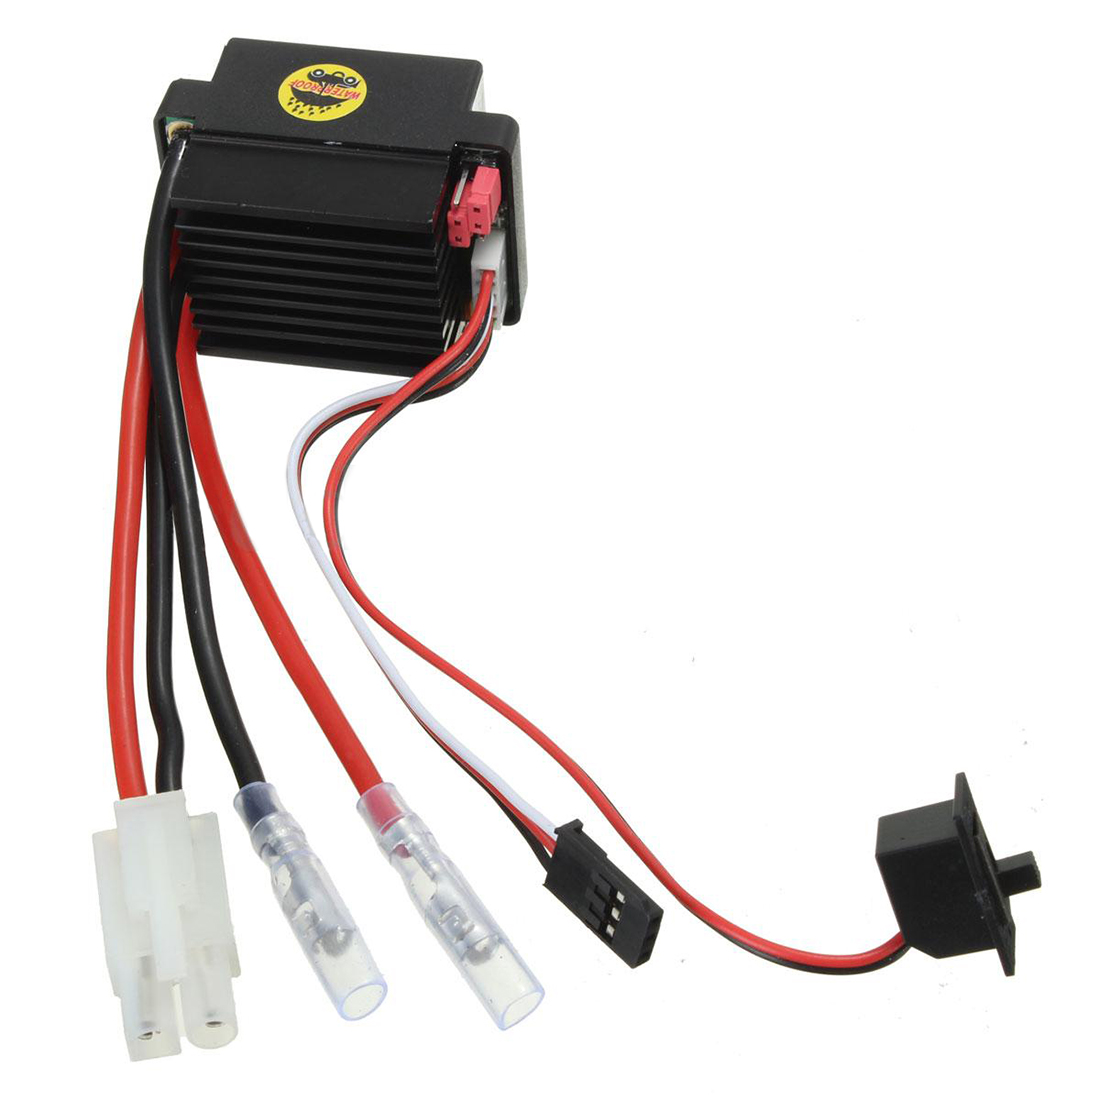 HSP 320A Brushed Brush Motor Speed Controller ESC F. 1/10 1/12 RC Truck Car Boat 1pcs 320a brushed esc speed controller w reverse for 1 8 1 10 rc flat off road monster truck truck car boat dropship